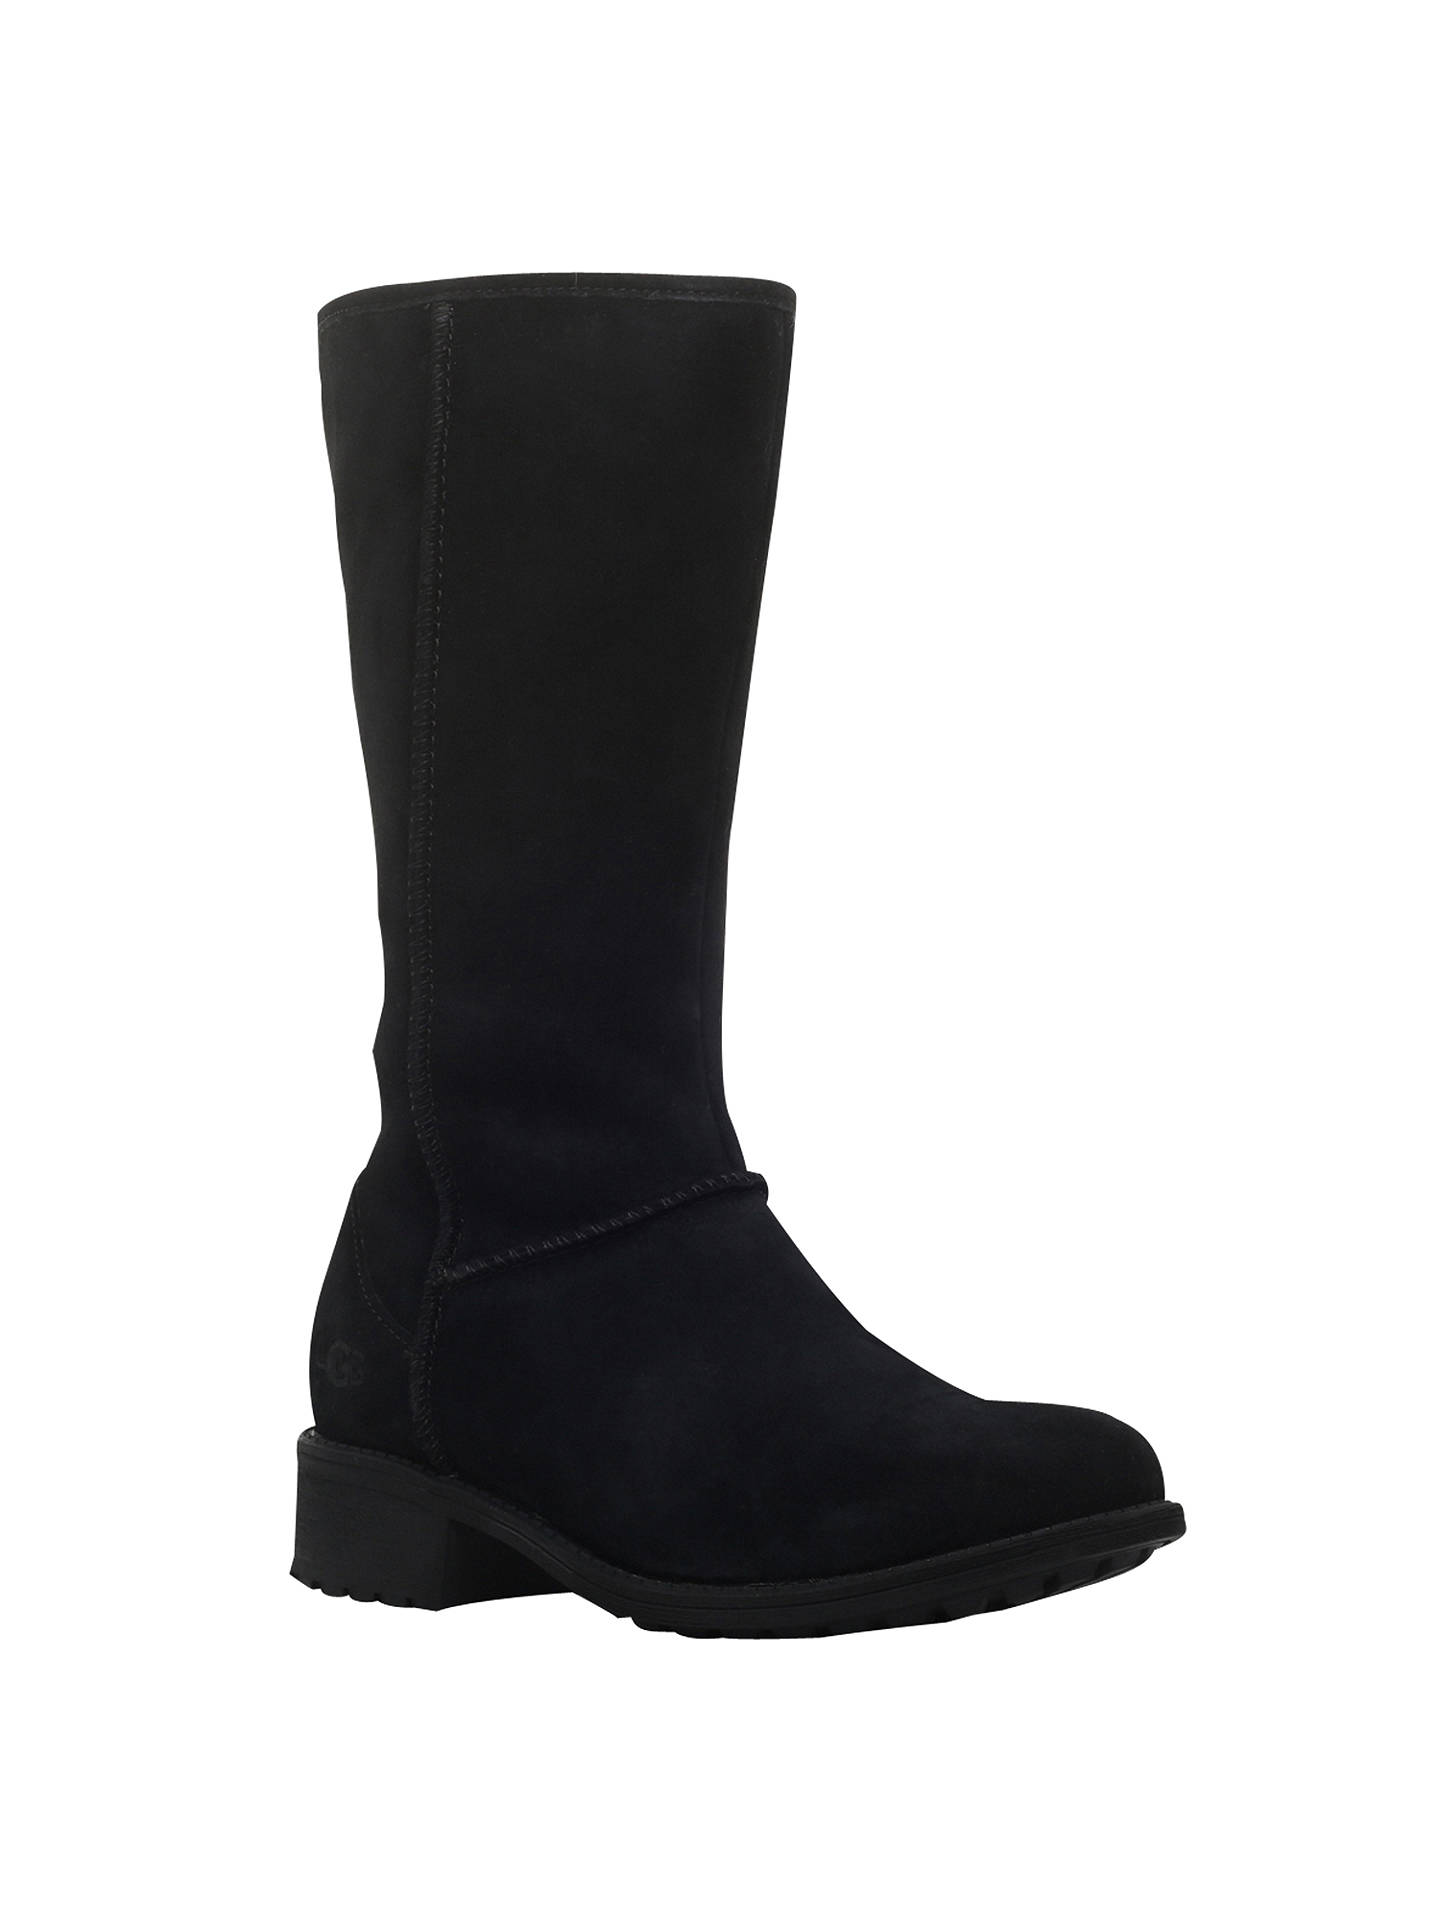 b2699183af6 UGG Linford Knee High Boots, Black at John Lewis & Partners